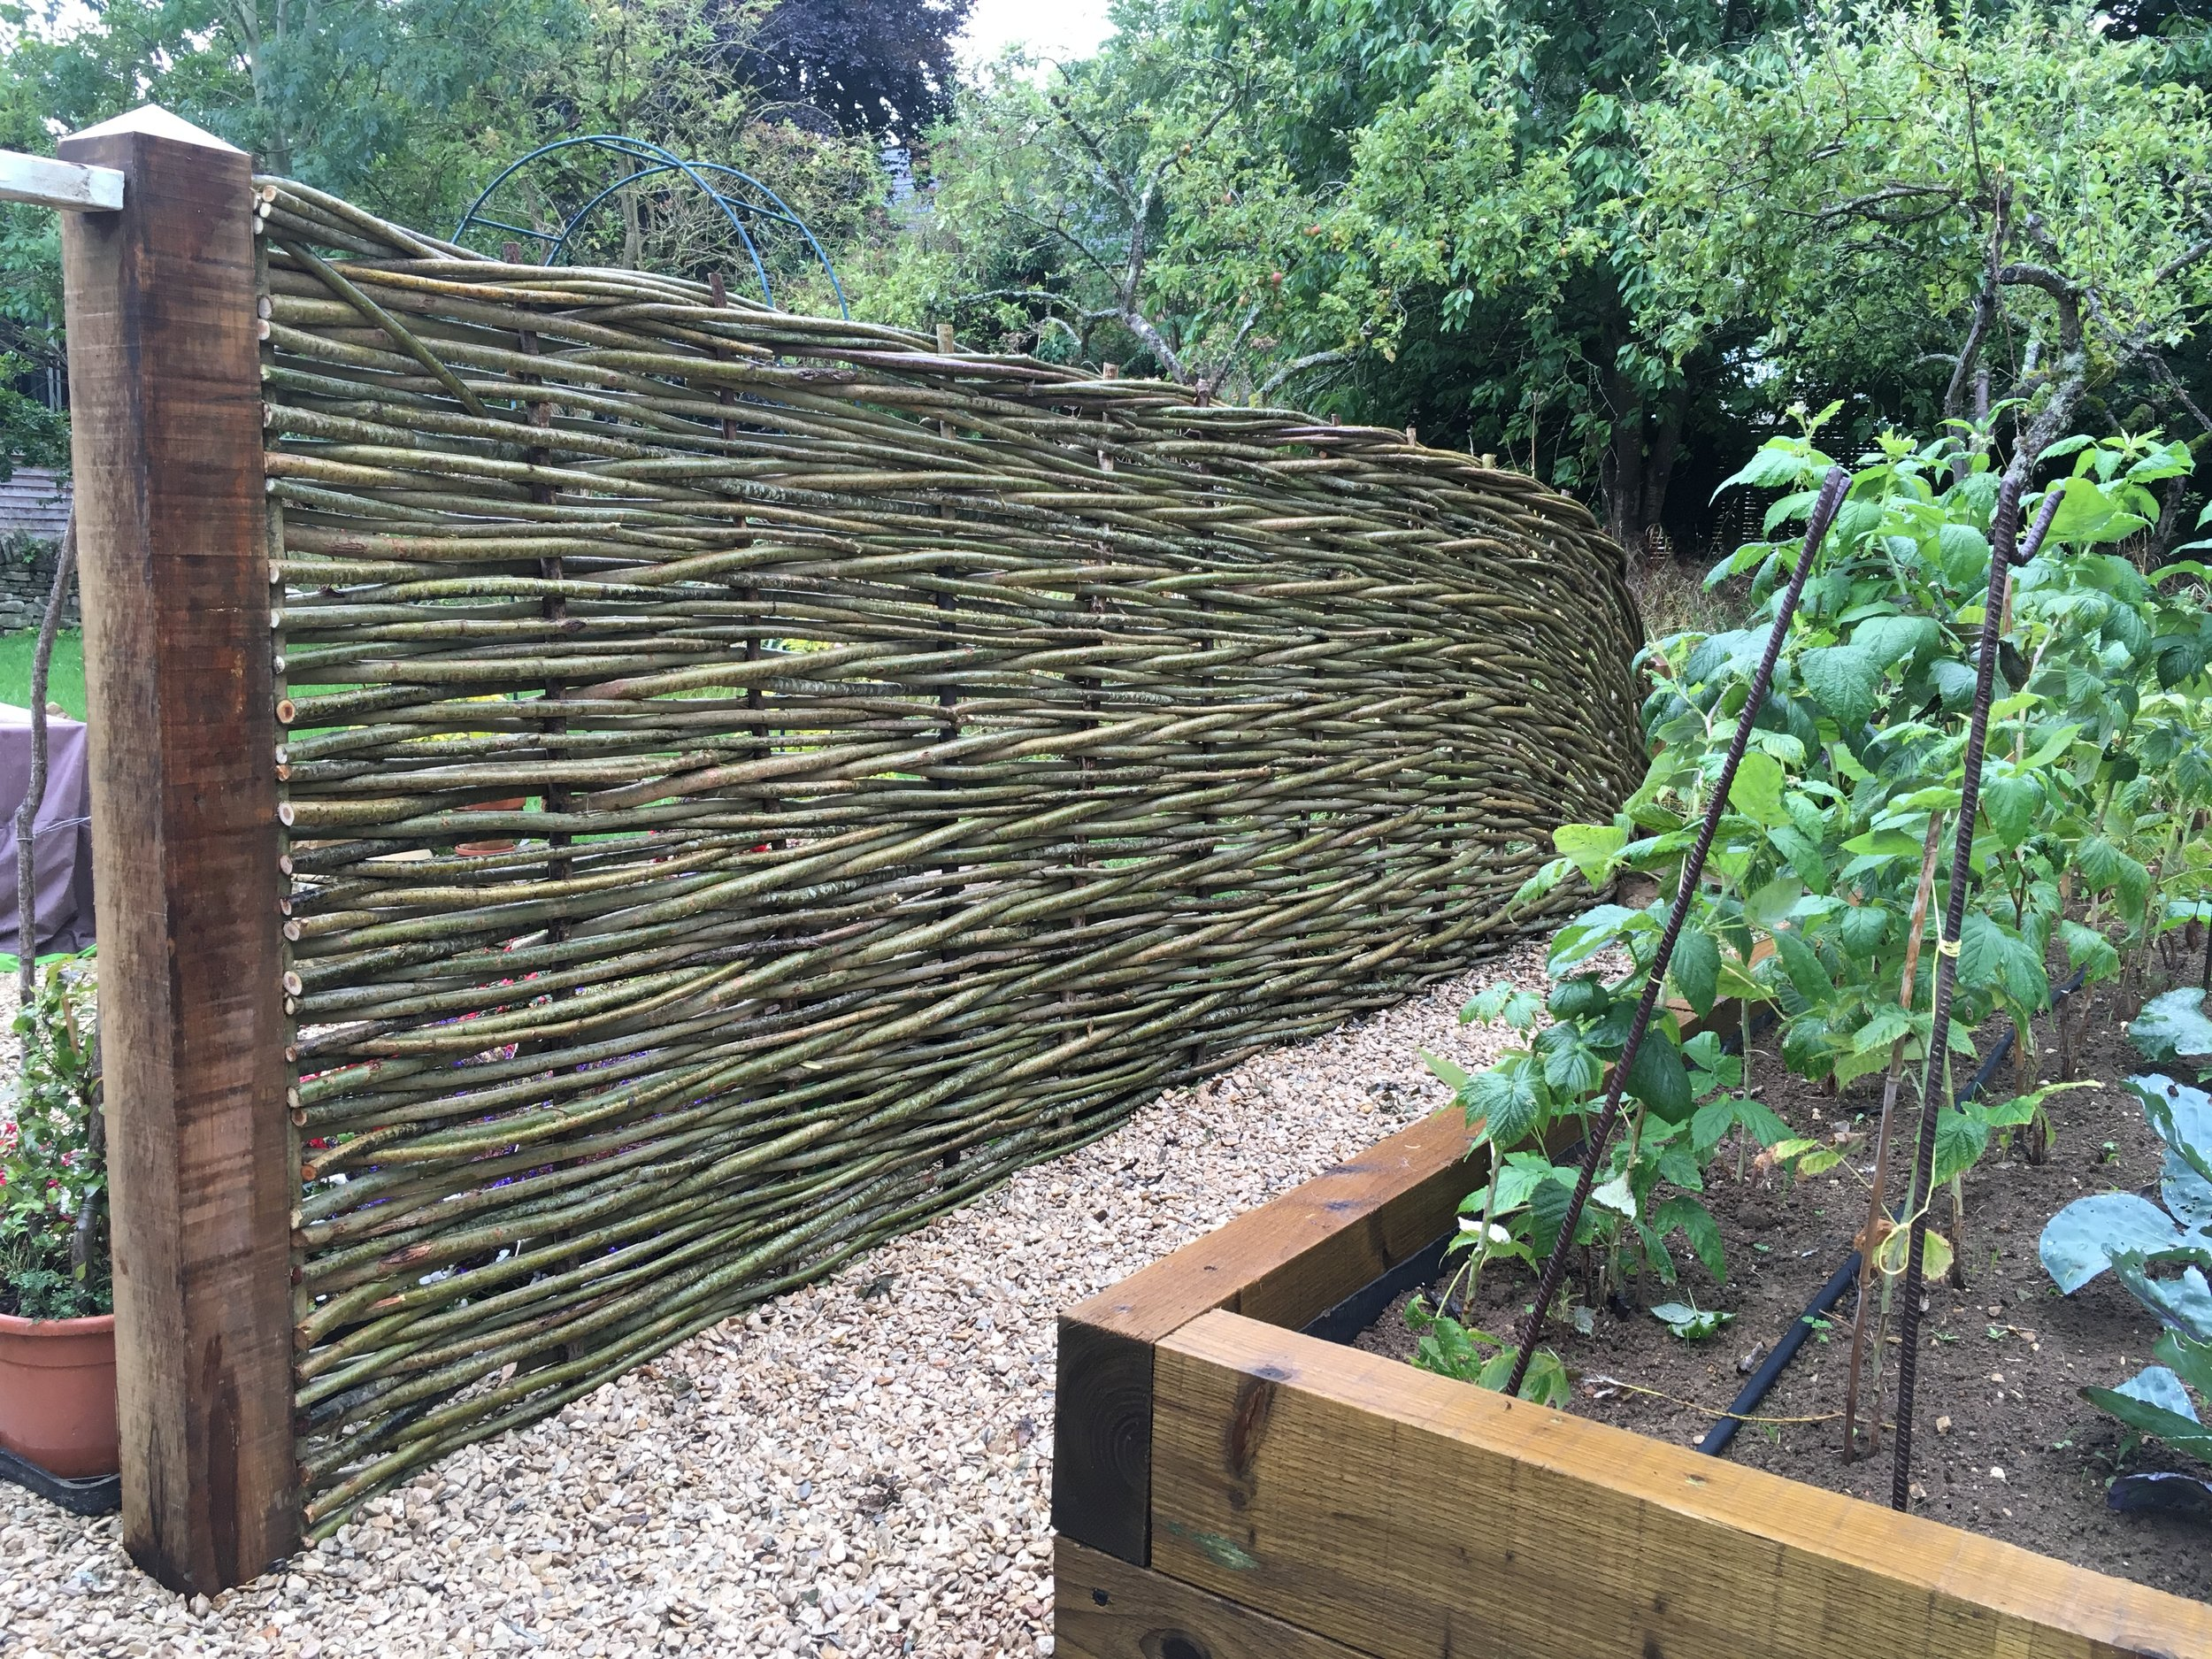 Woven fencing